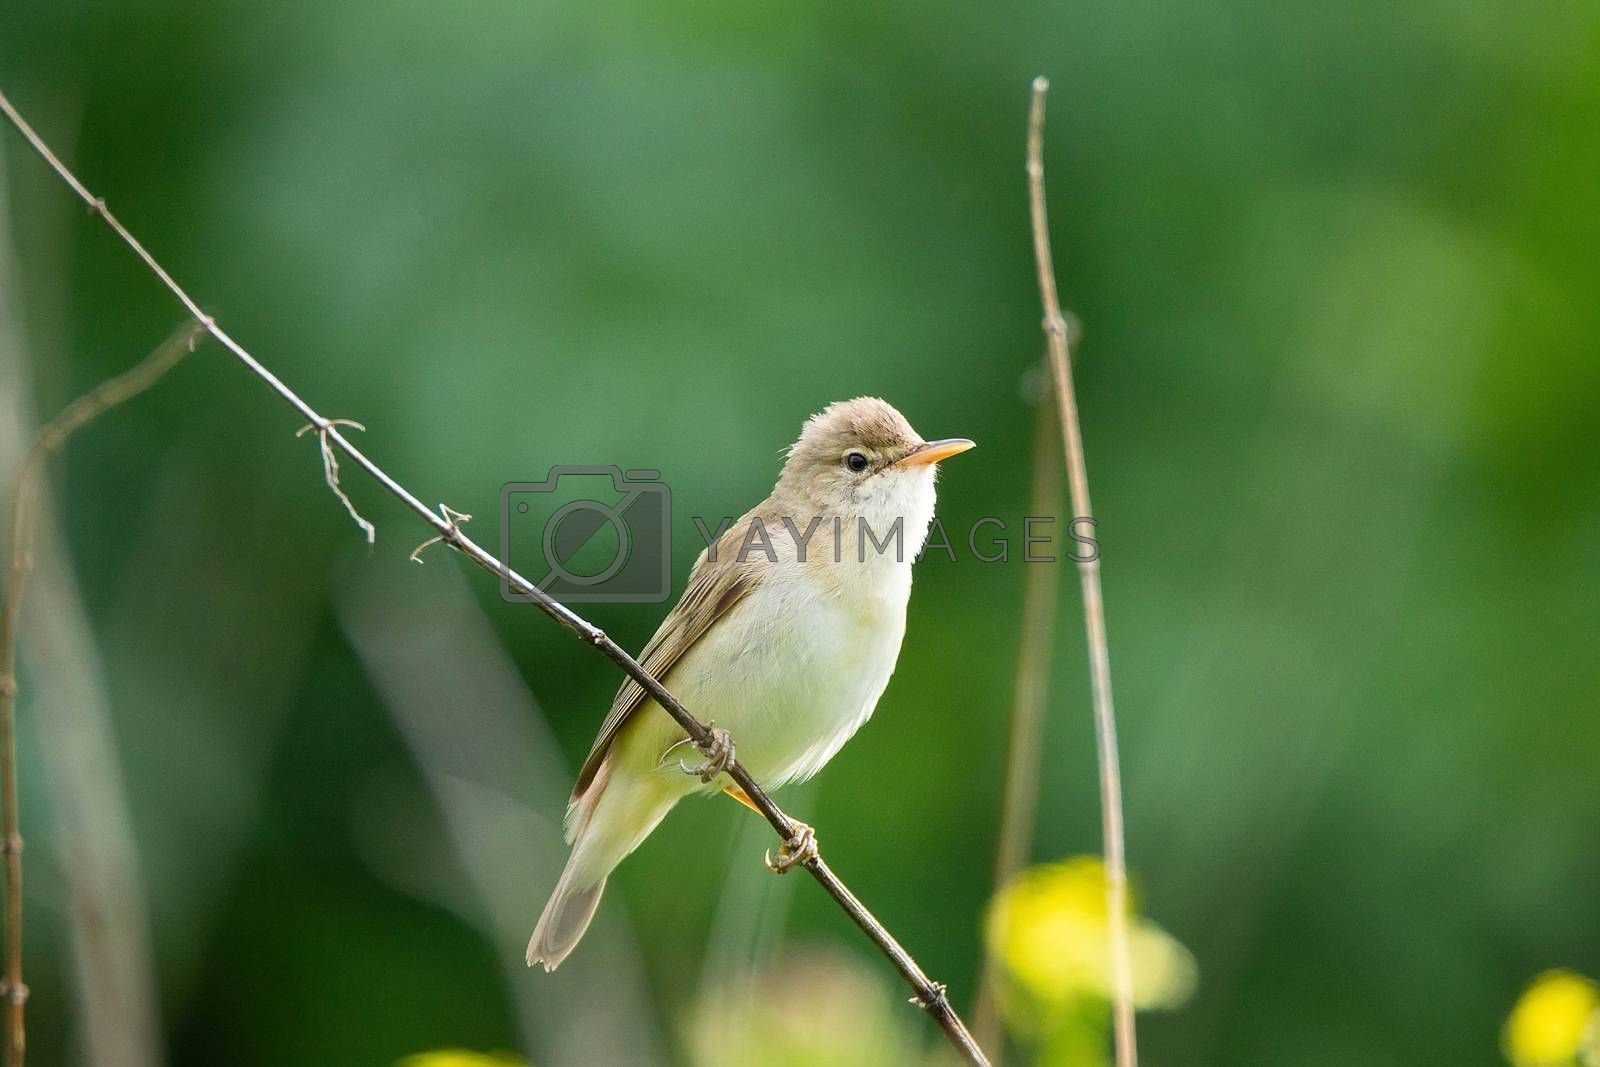 reed sits on a green branch and sings